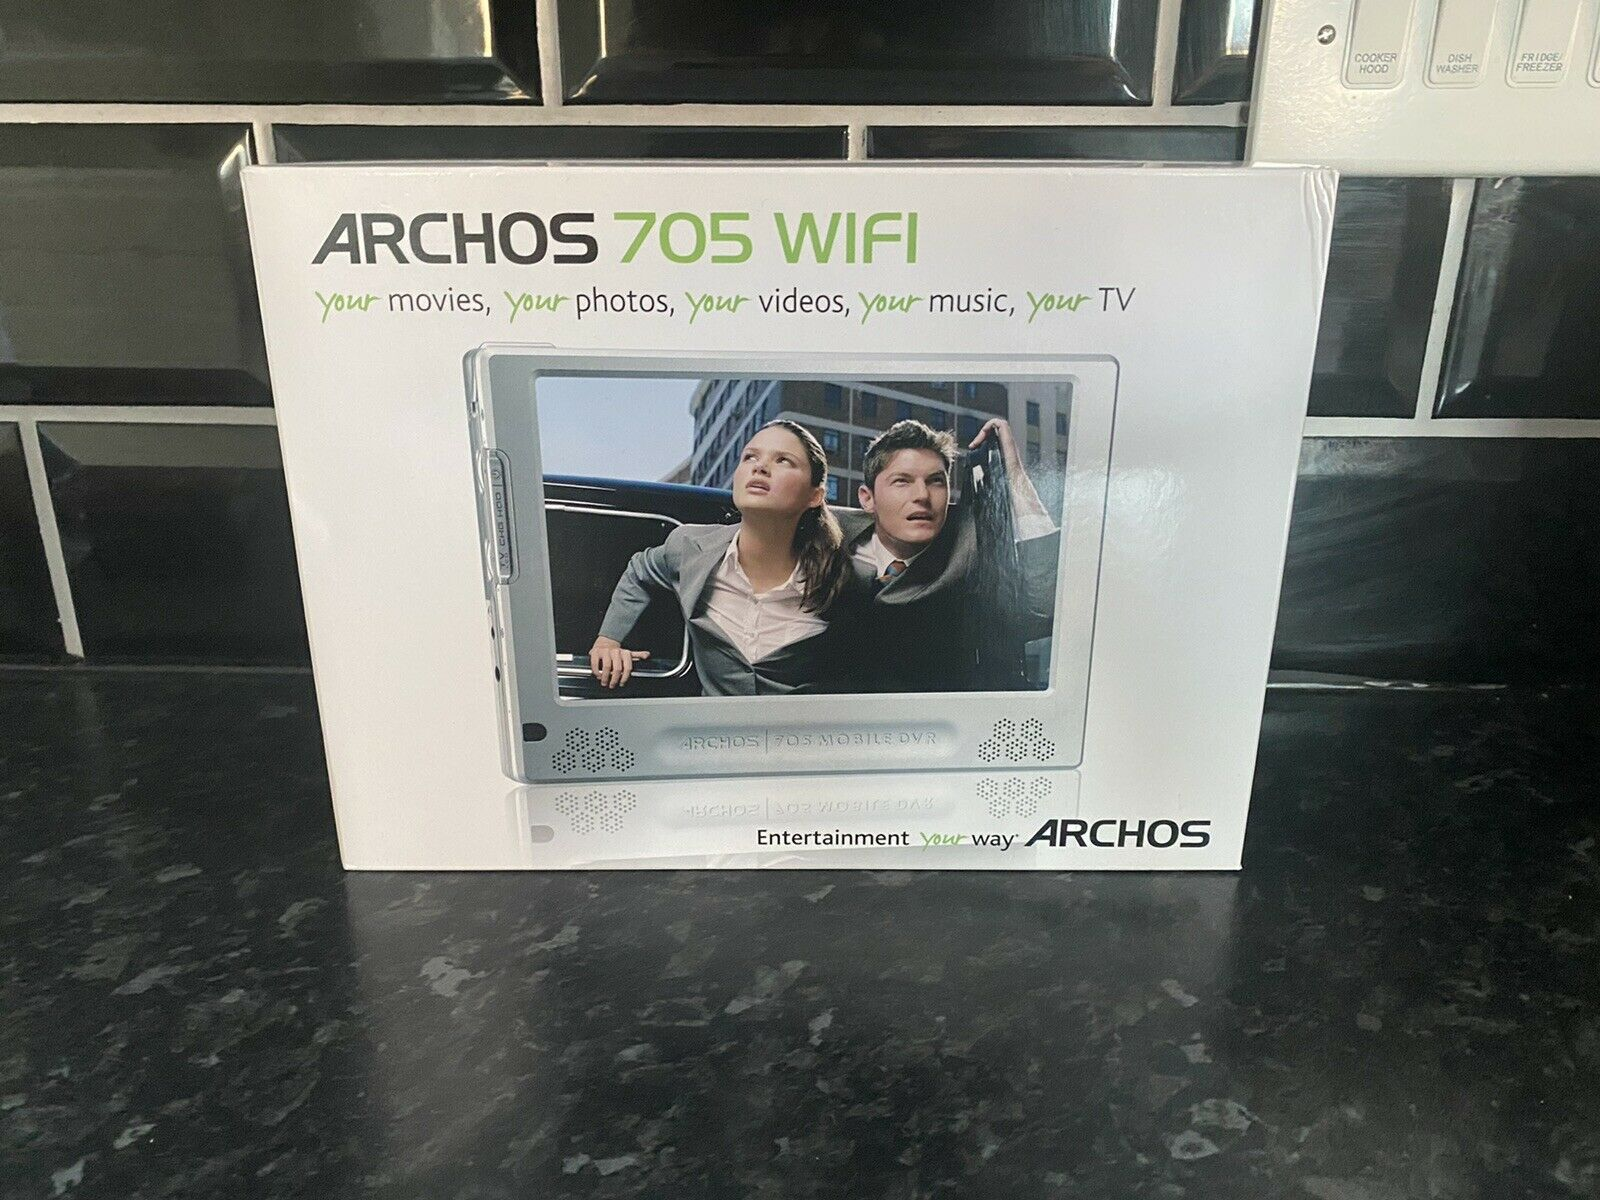 Archos 705 WIFI Media Player 160GB With Cover